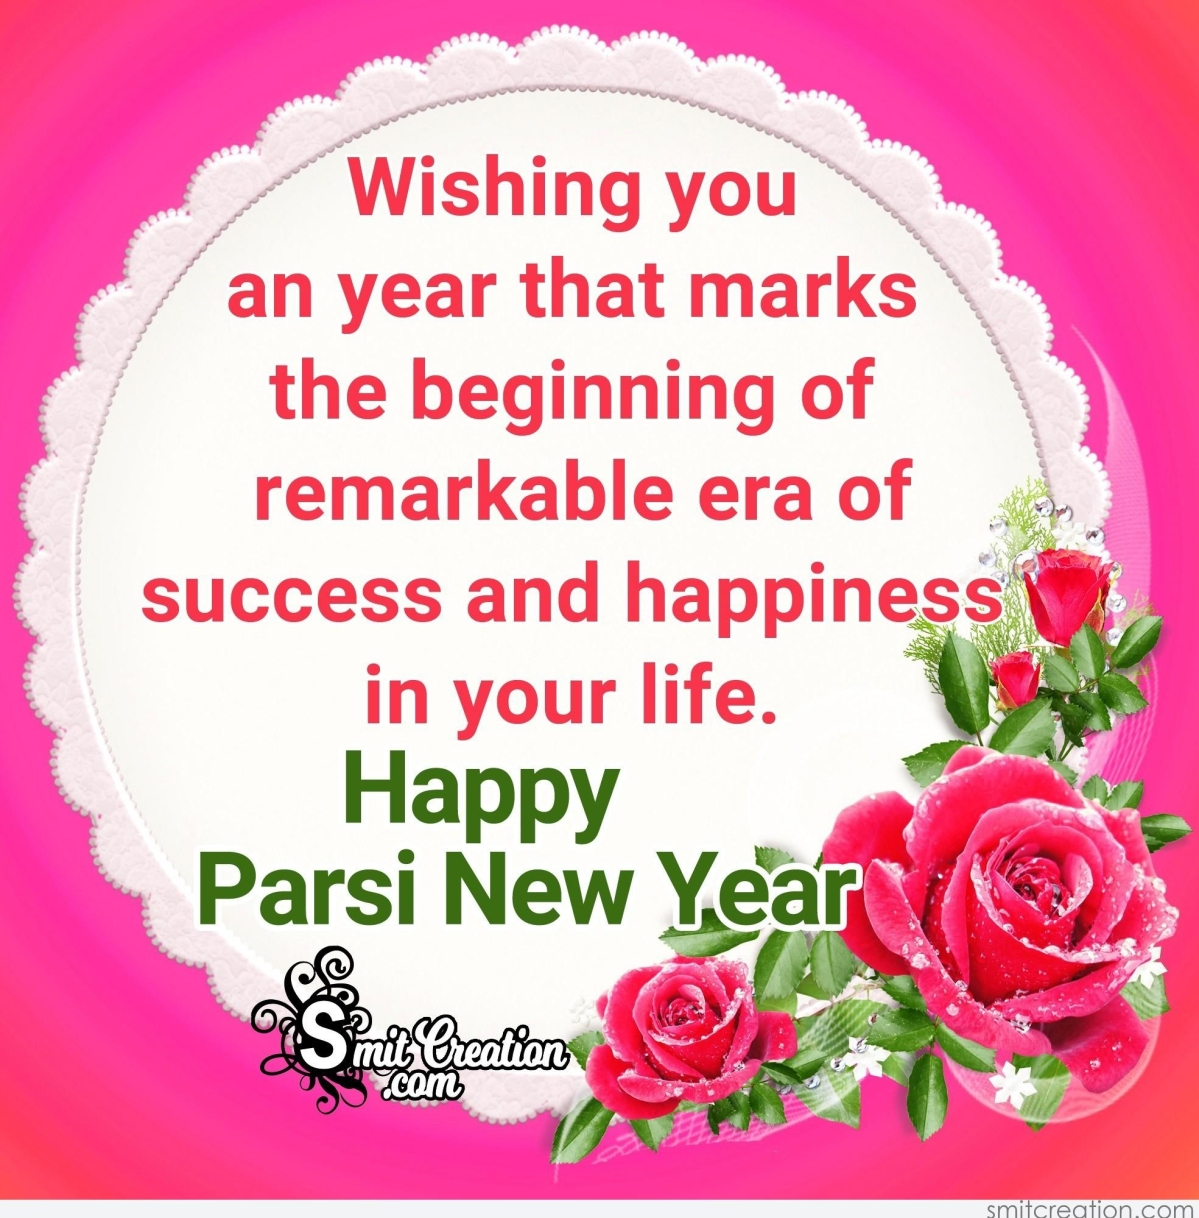 A Year Of Happiness wishing you an year that marks the beginning of remarkable